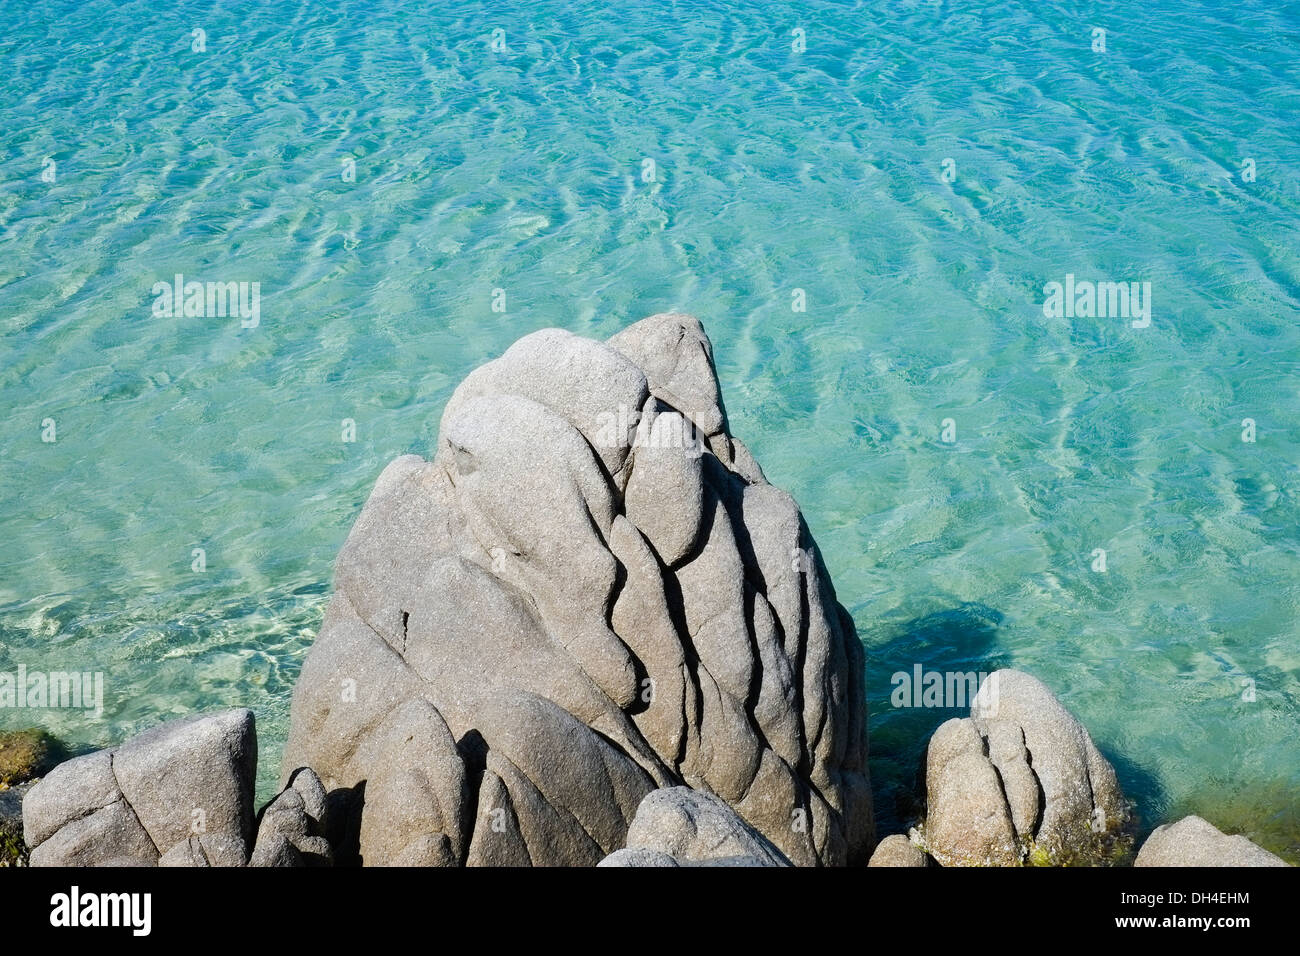 Transparent and green water with rock along the coast in Chia, Sardinia, Italy - Stock Image